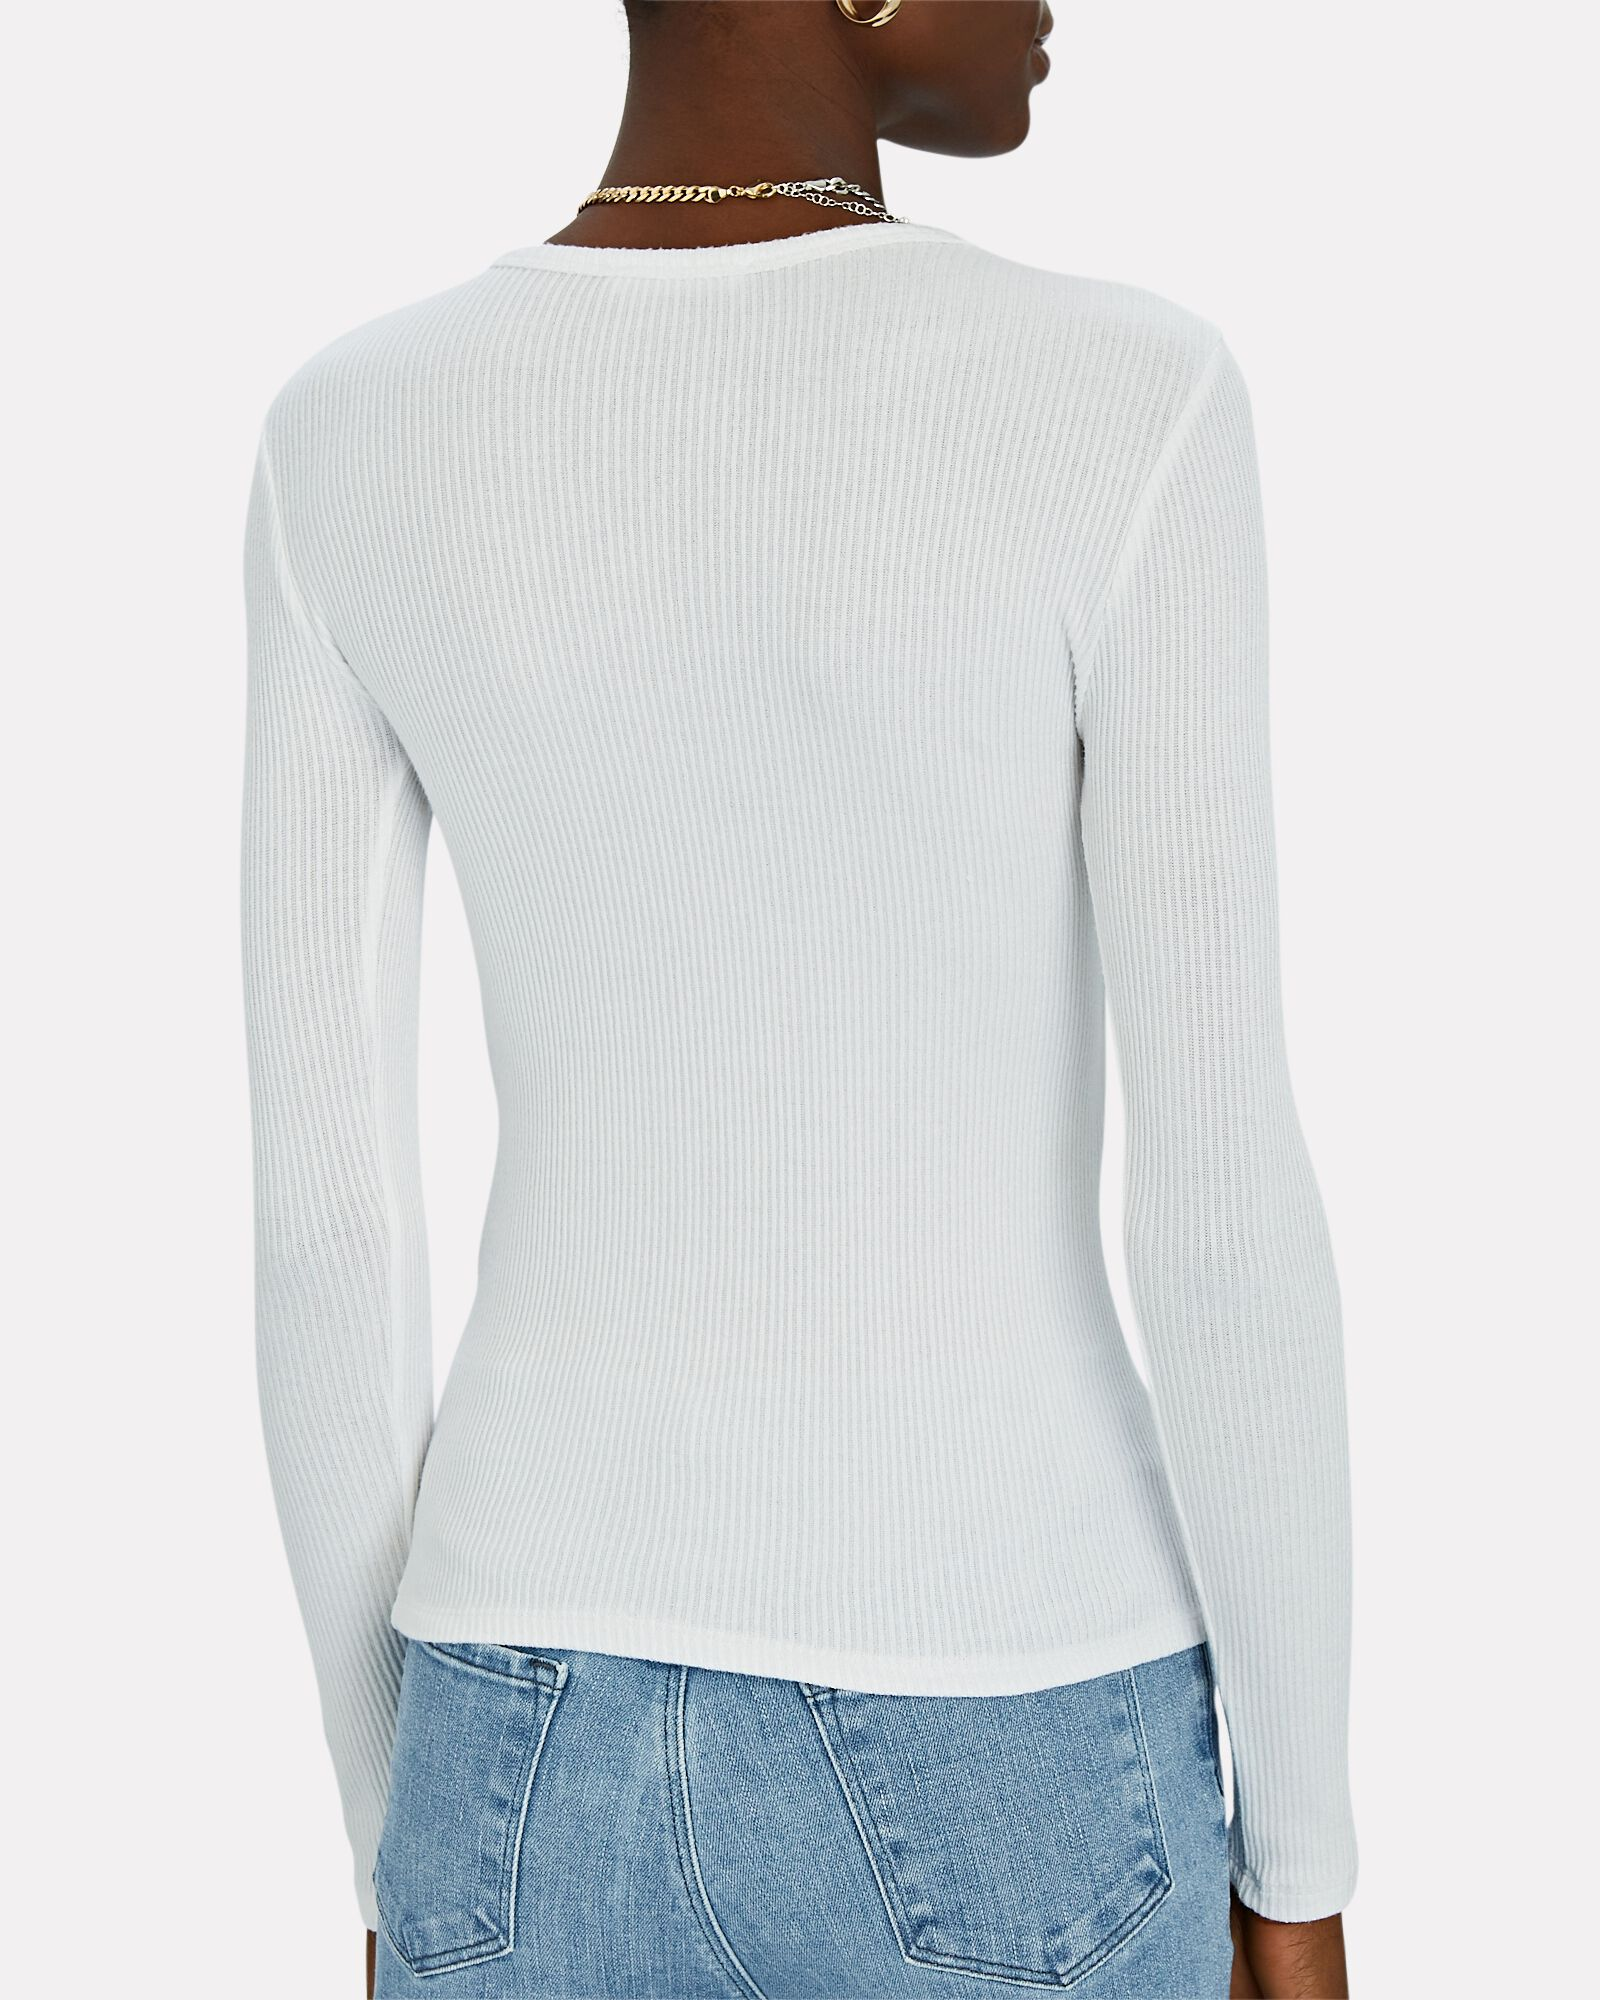 Quincy Long Sleeve Rib Knit Top, WHITE, hi-res